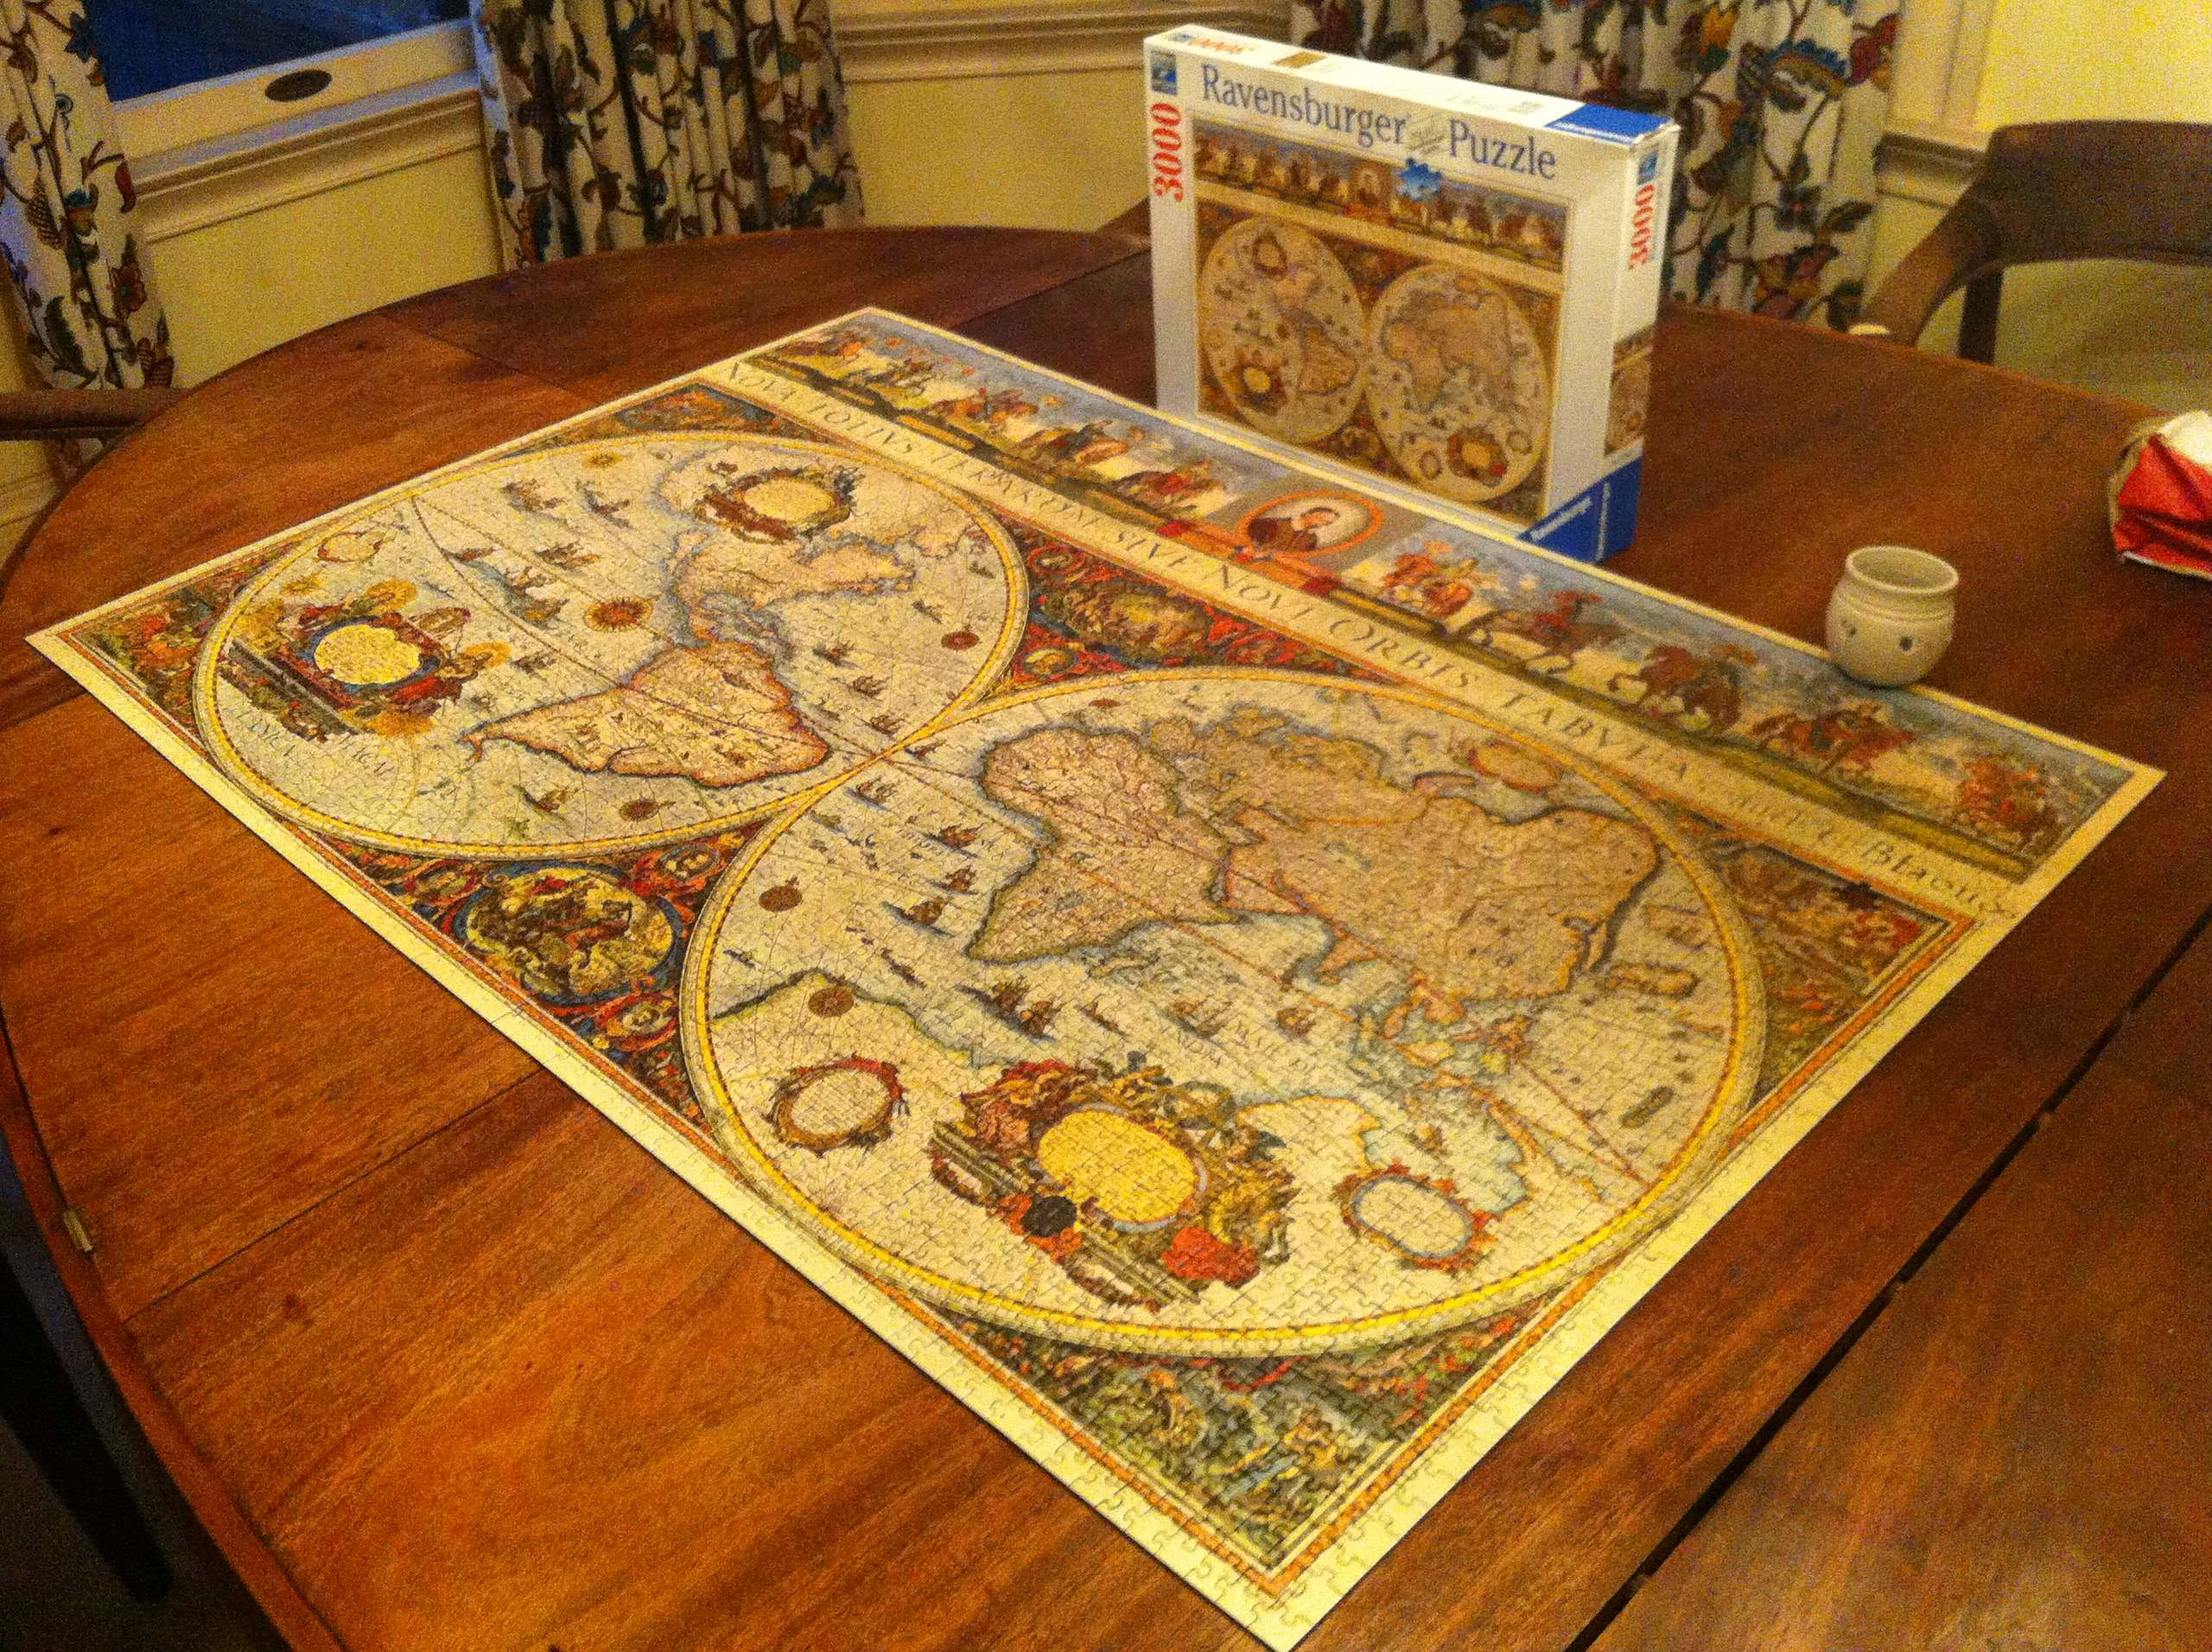 Open Letter to Ravensburger Puzzles - Blog of Damon